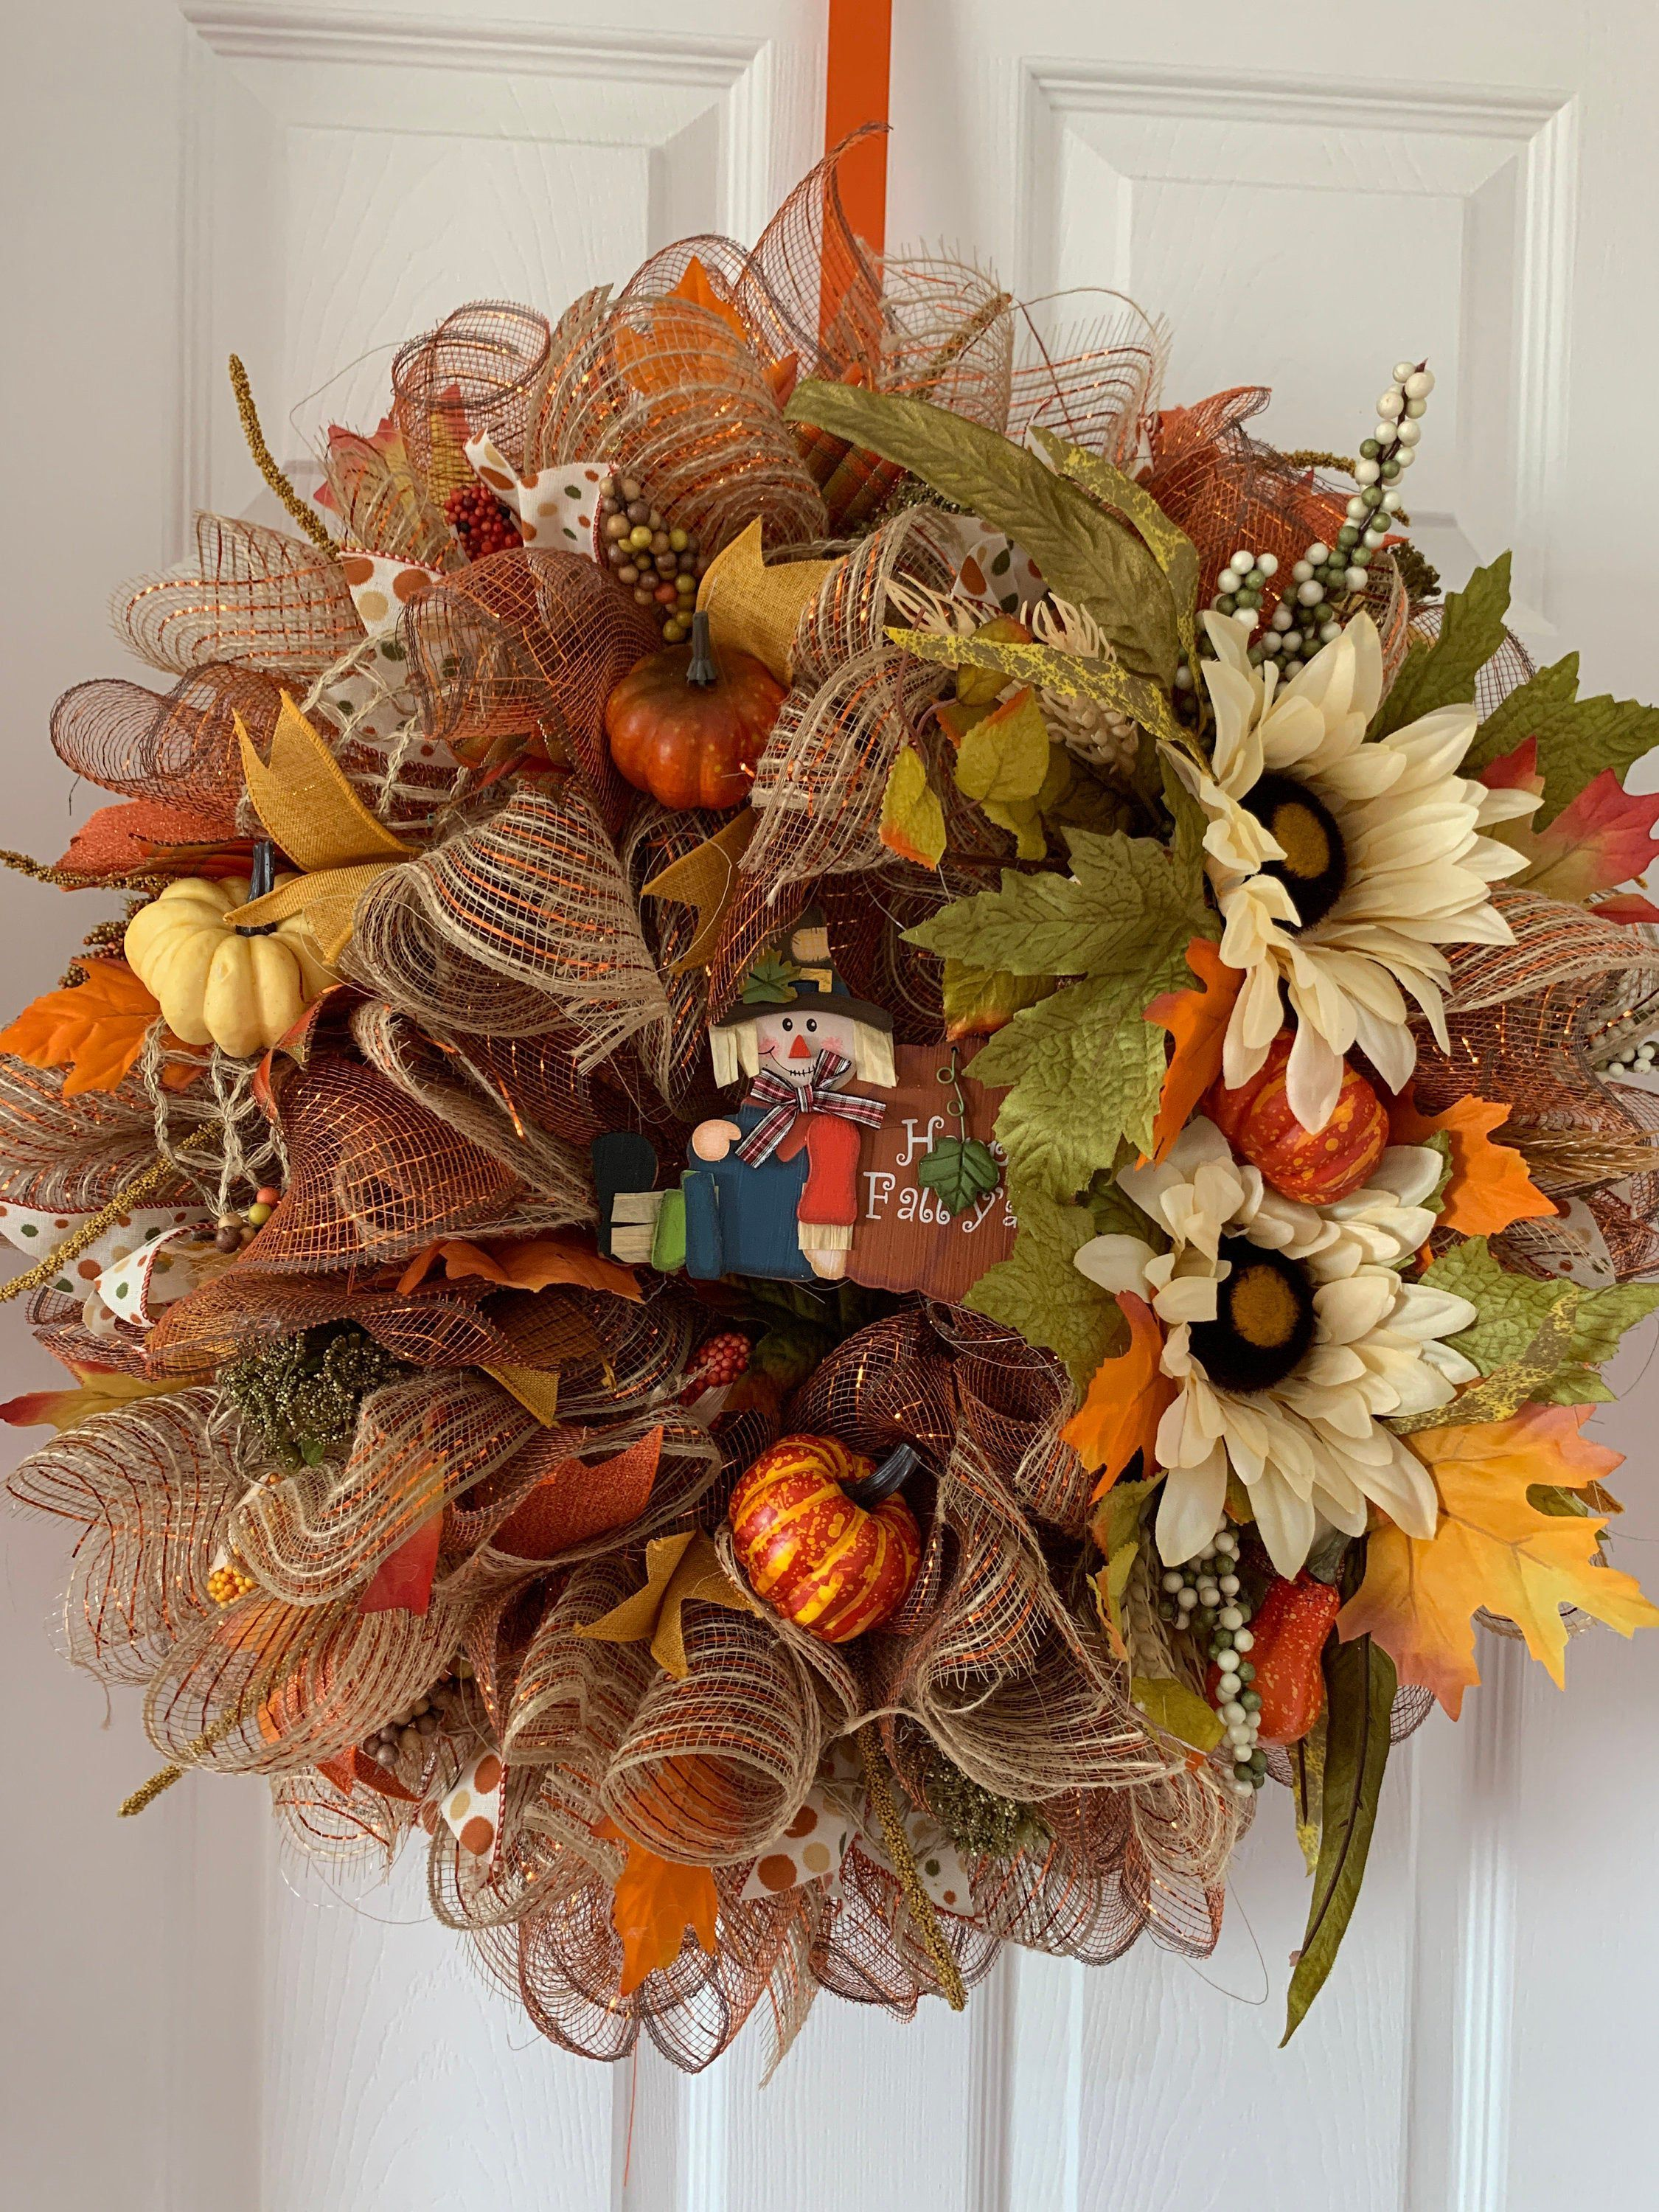 Fall wreath/Autumn Wreath/Traditional Wreath/Scarecrow Wreath #scarecrowwreath Excited to share this item from my #etsy shop: #Fall wreath/#Autumn Wreath/#Traditional Wreath/# Scarecrow Wreath/#Front Door Wreath/#Door Wreath  #homedecor #countryfarmhouse #scarecrowwreath #traditionalwreath #frontdoorwreath #doorwreath #scarecrowwreath